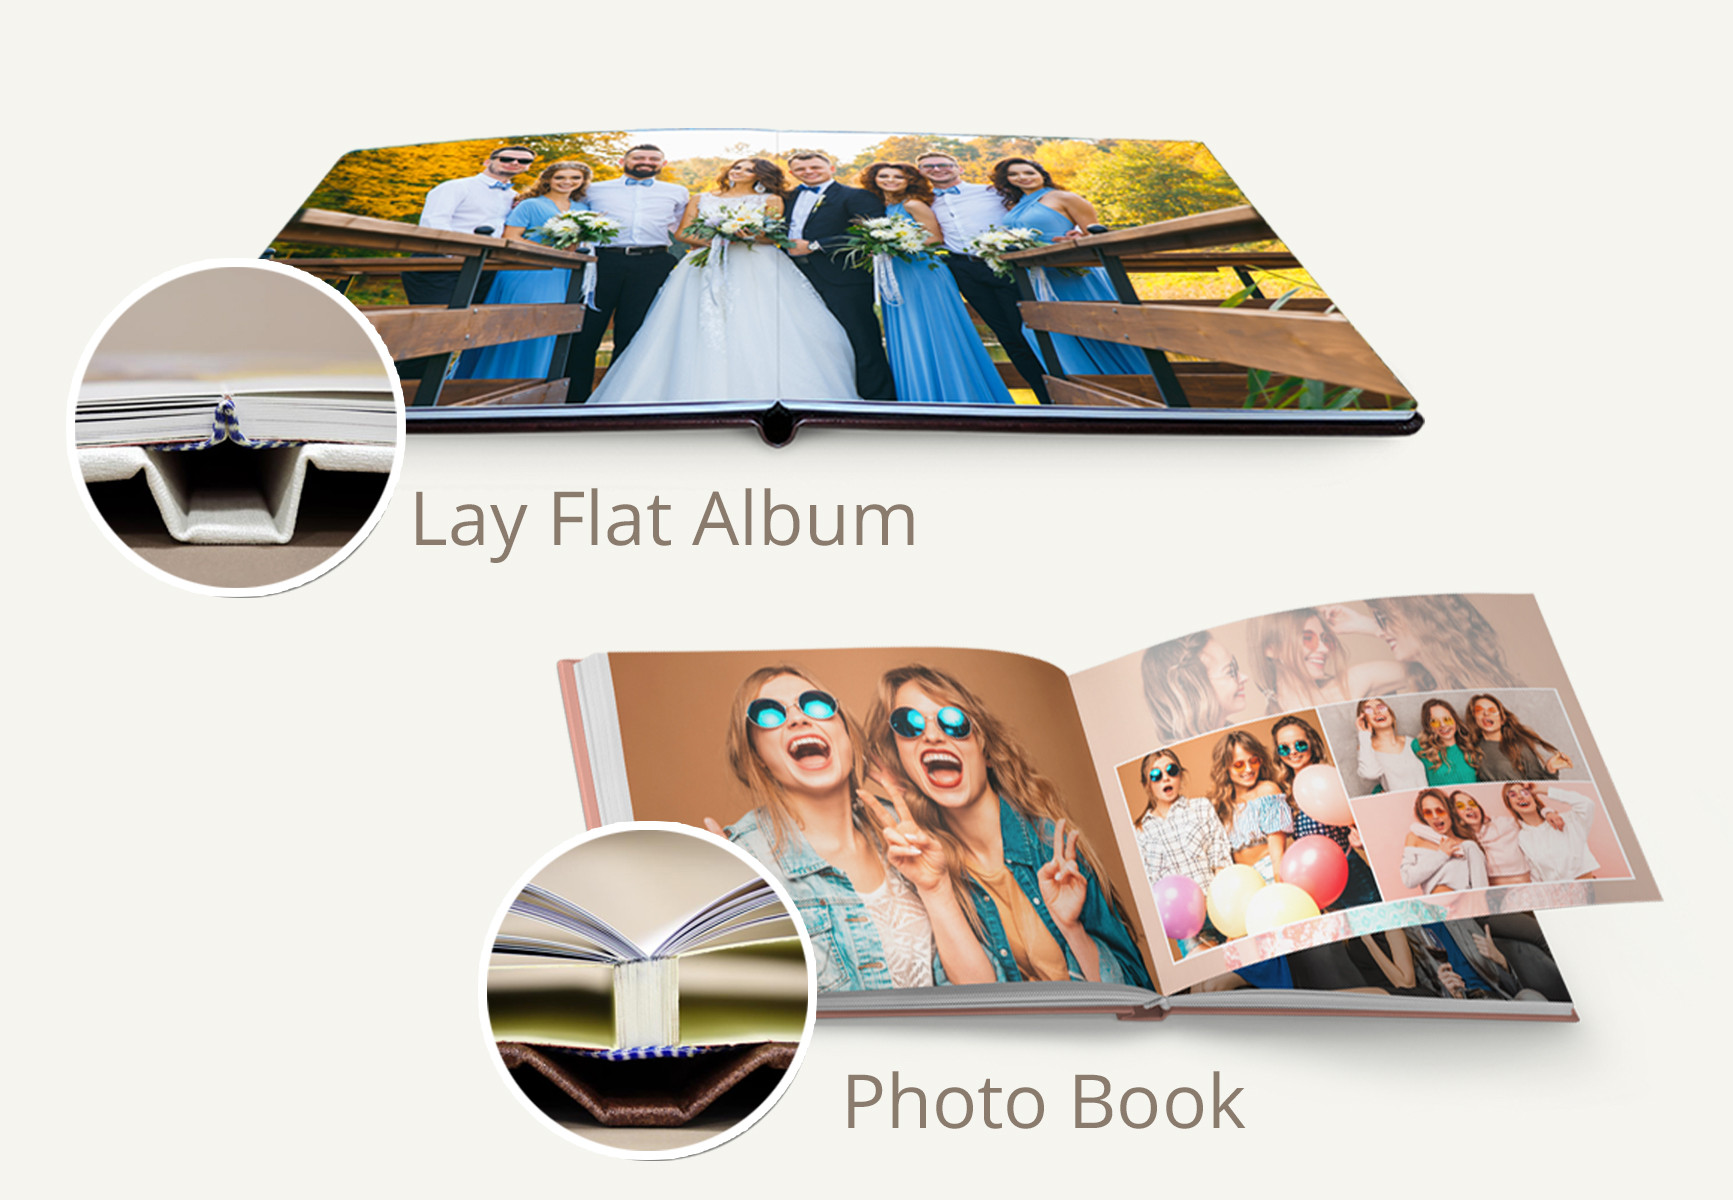 Differences between Photo Books, Lay Flat Albums and Express Books.